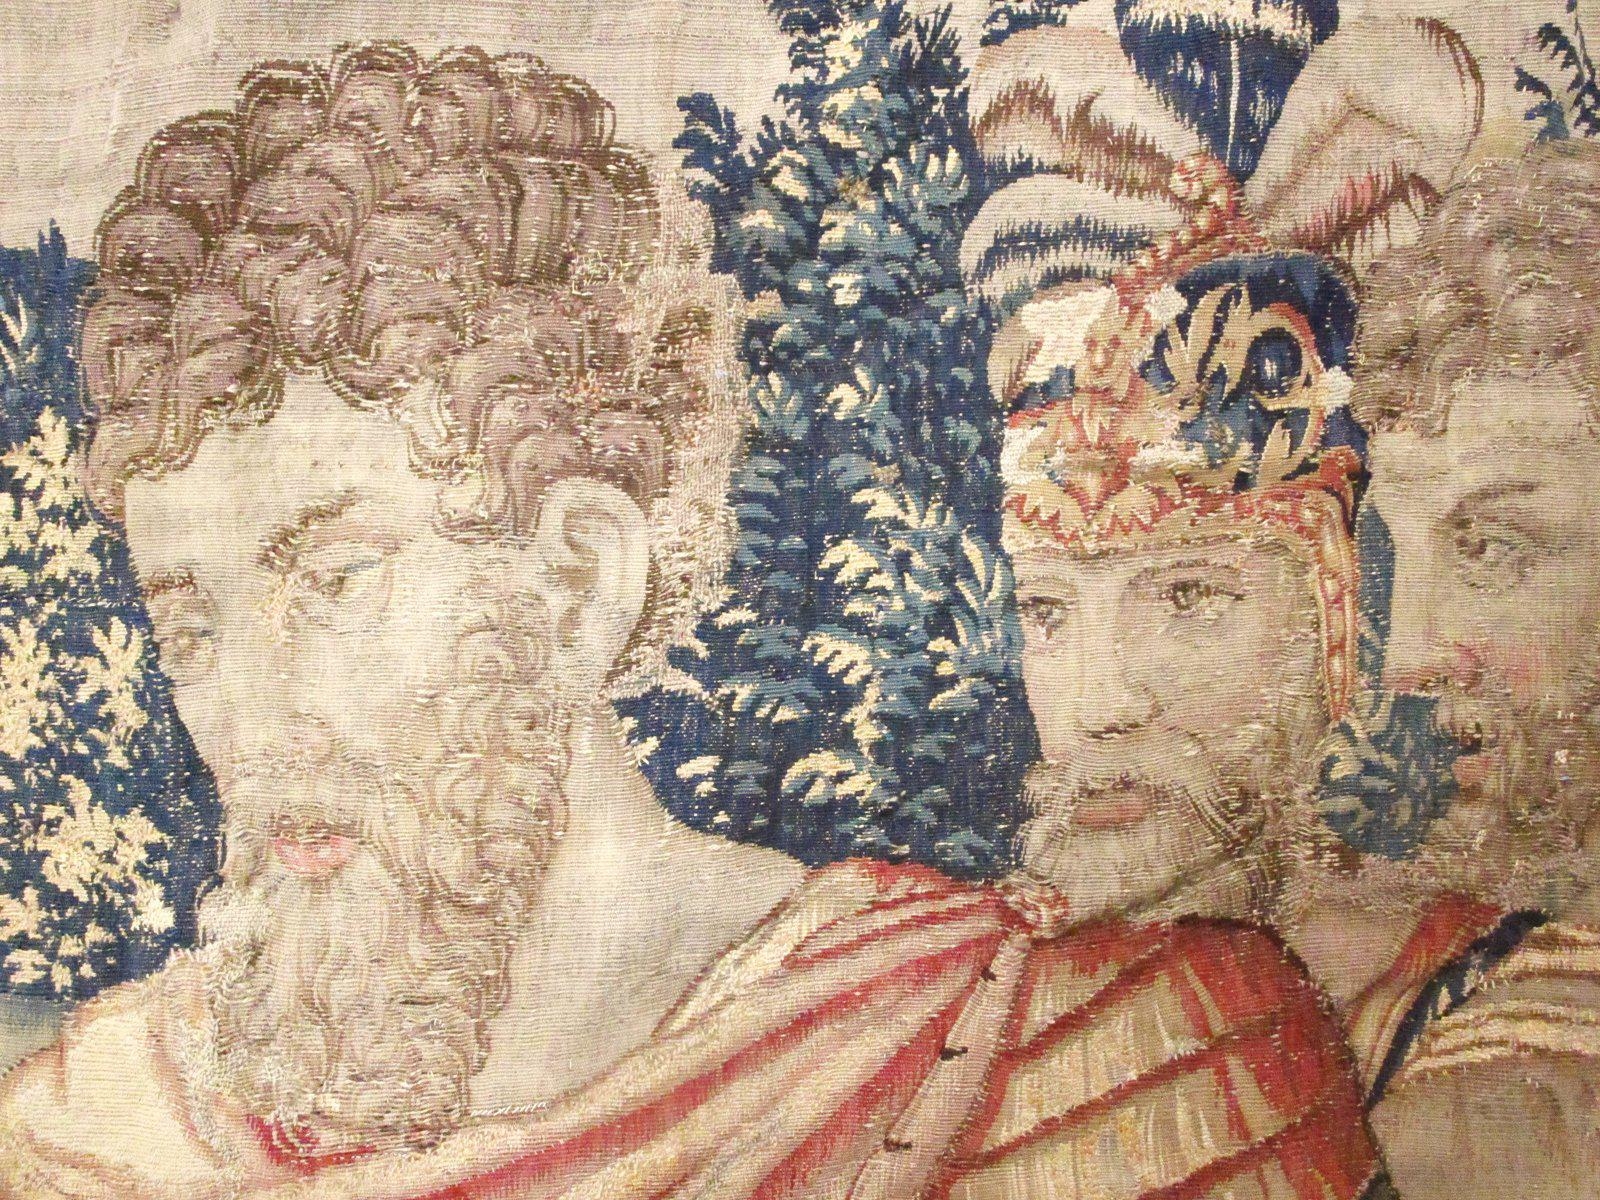 Historical Late 16th Century Brussels Tapestry Turco